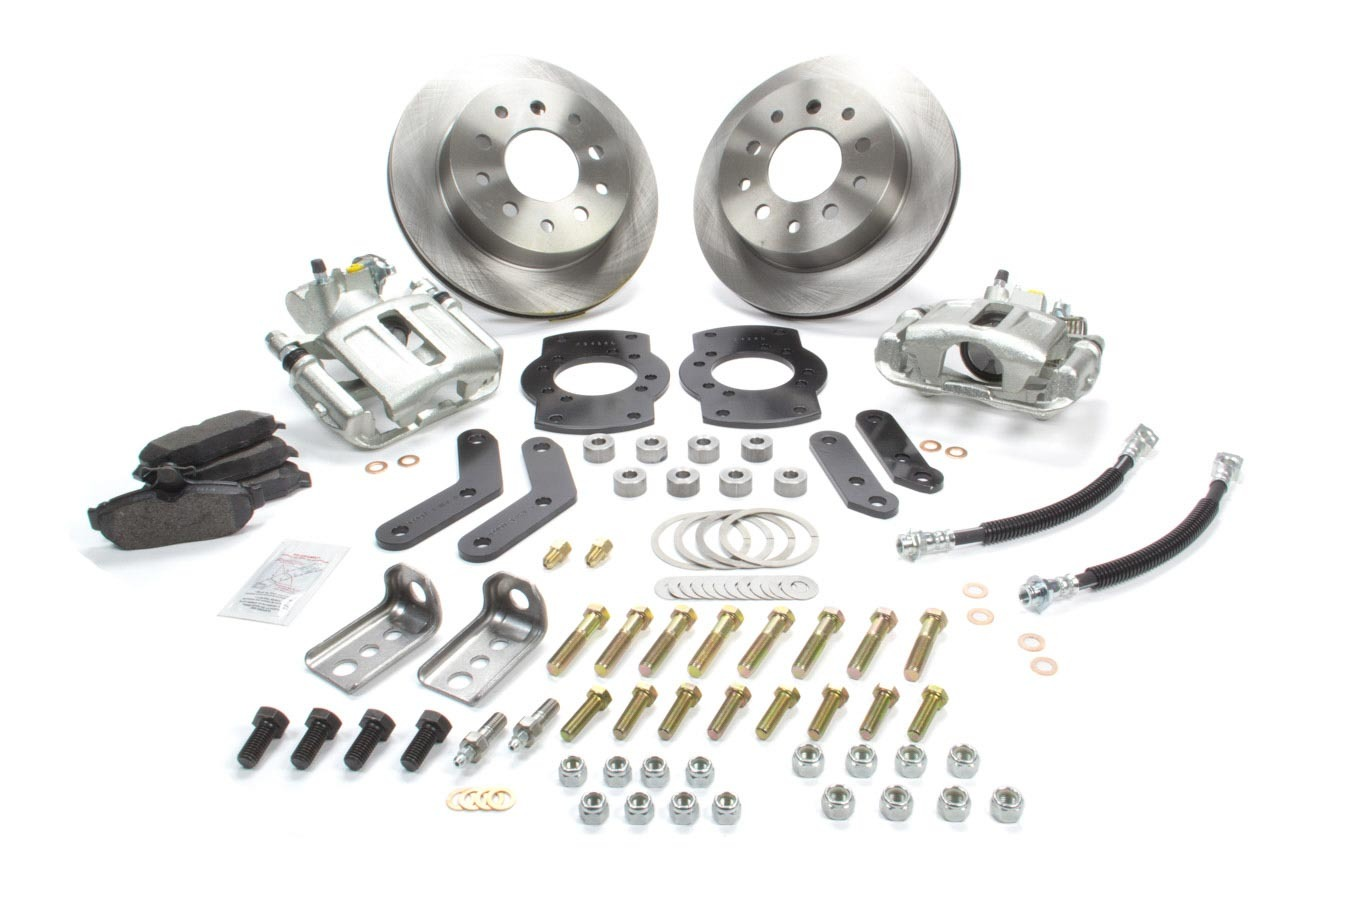 55-70 GM Full Size Rear Brake Kit